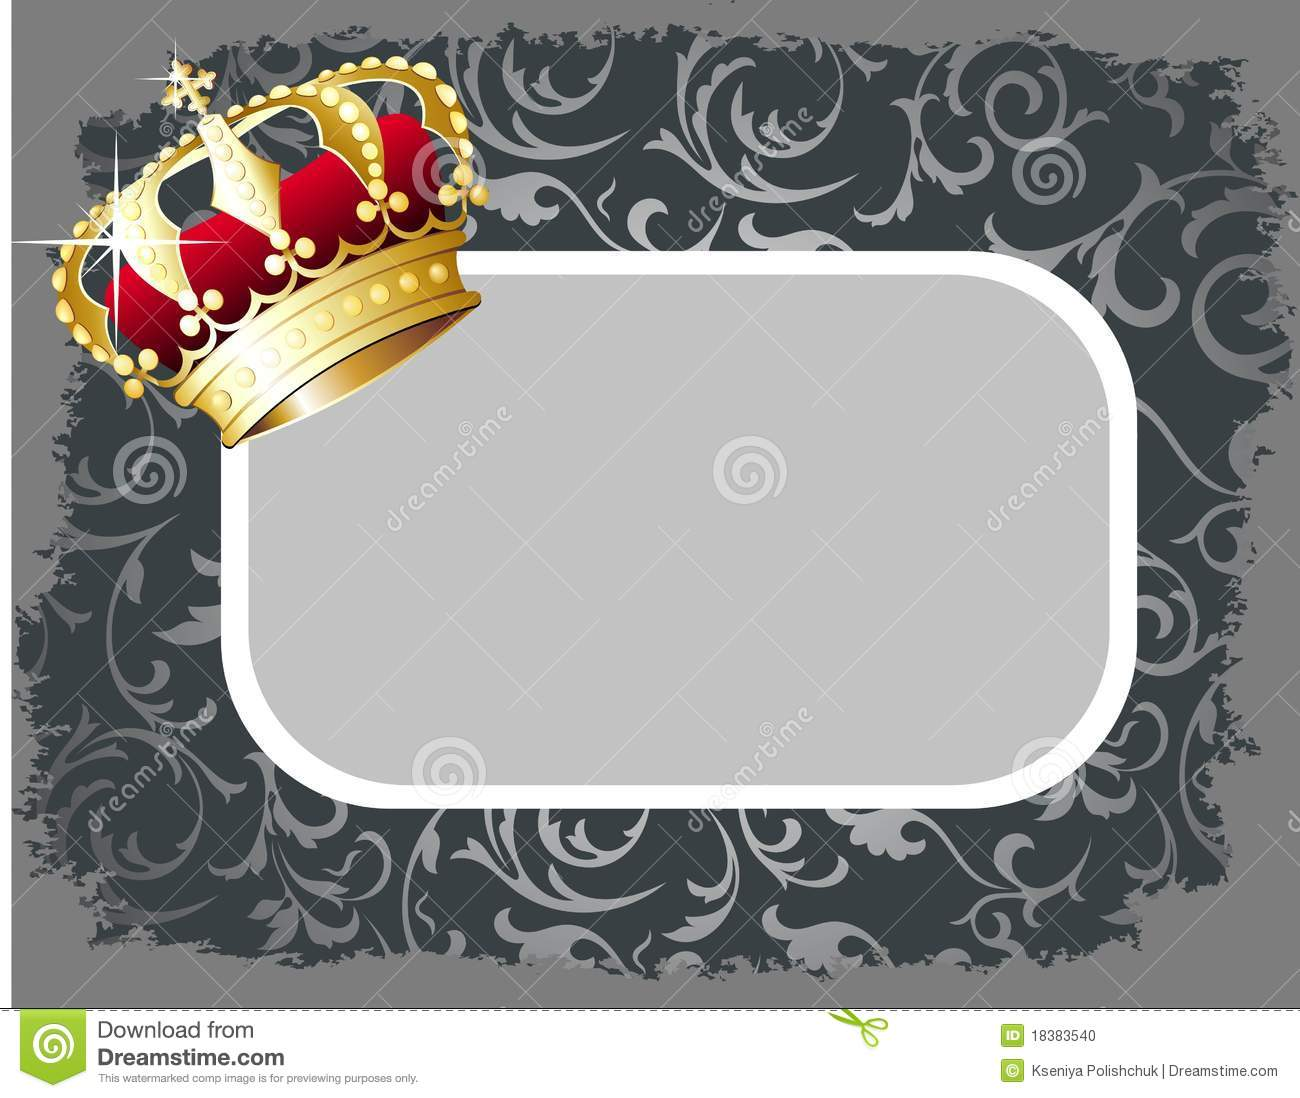 more similar stock images of royal crown frame